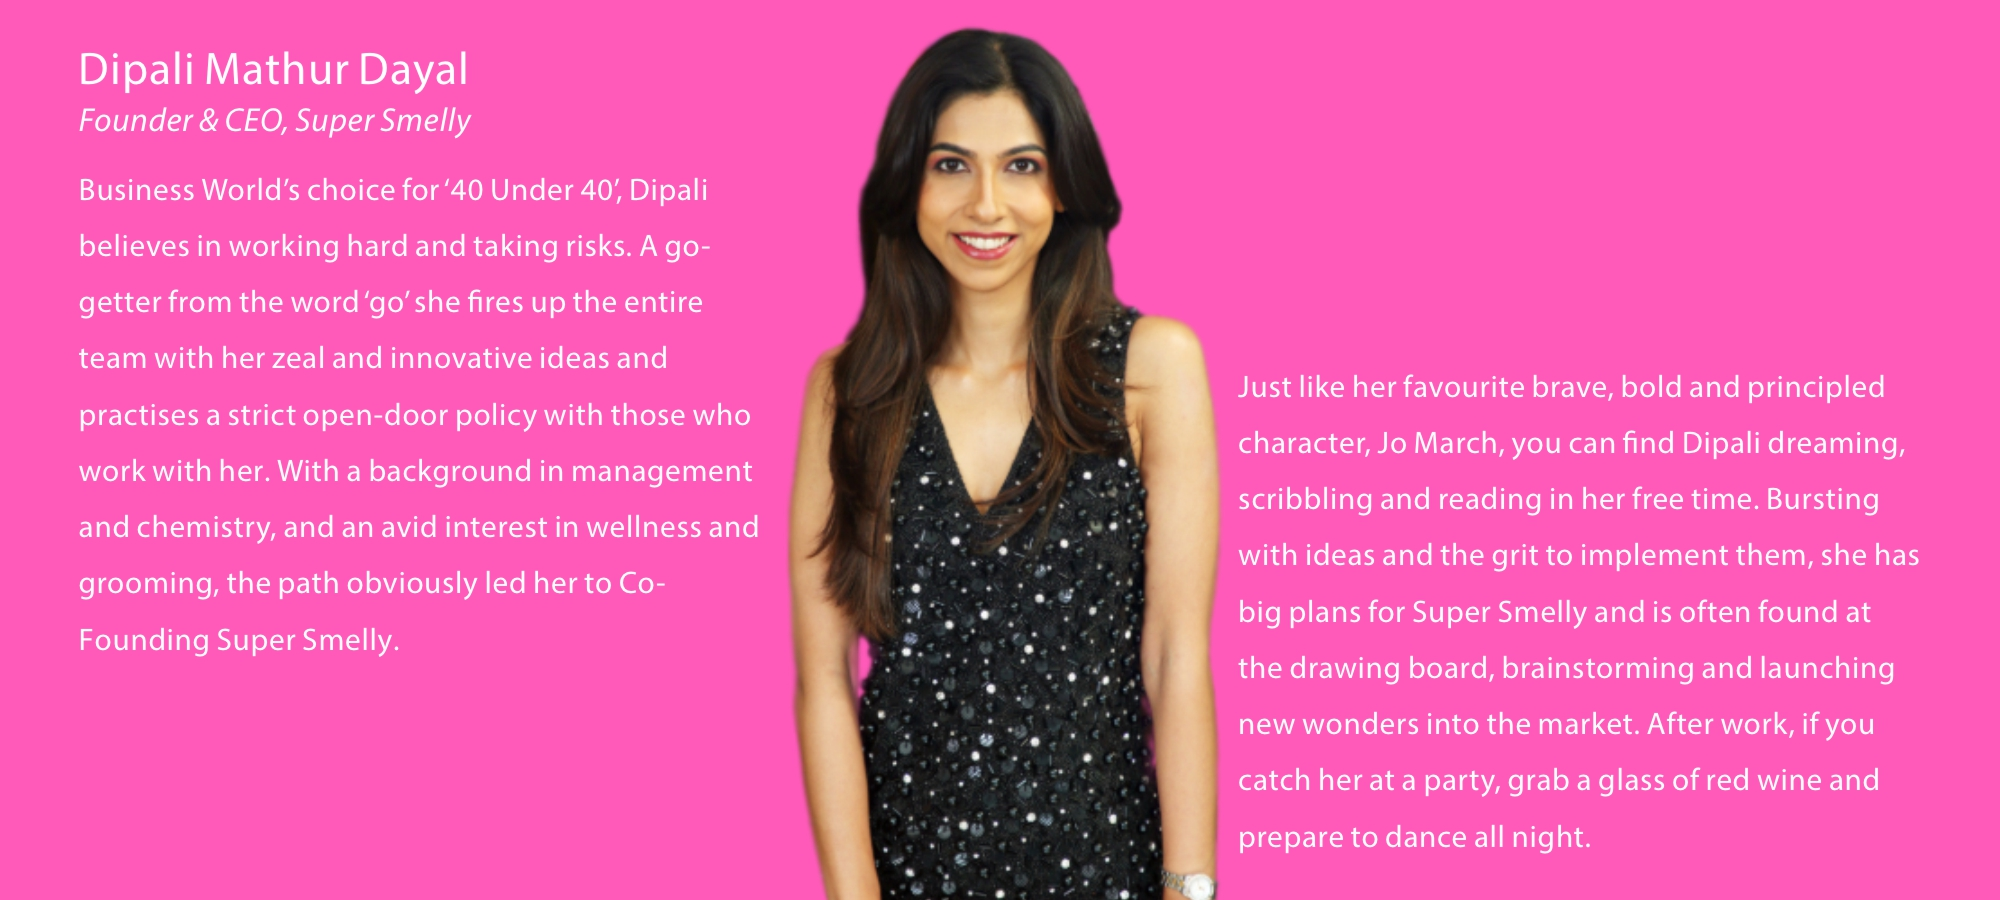 Dipali Mathur Dayal founder & CEO of Supersmelly